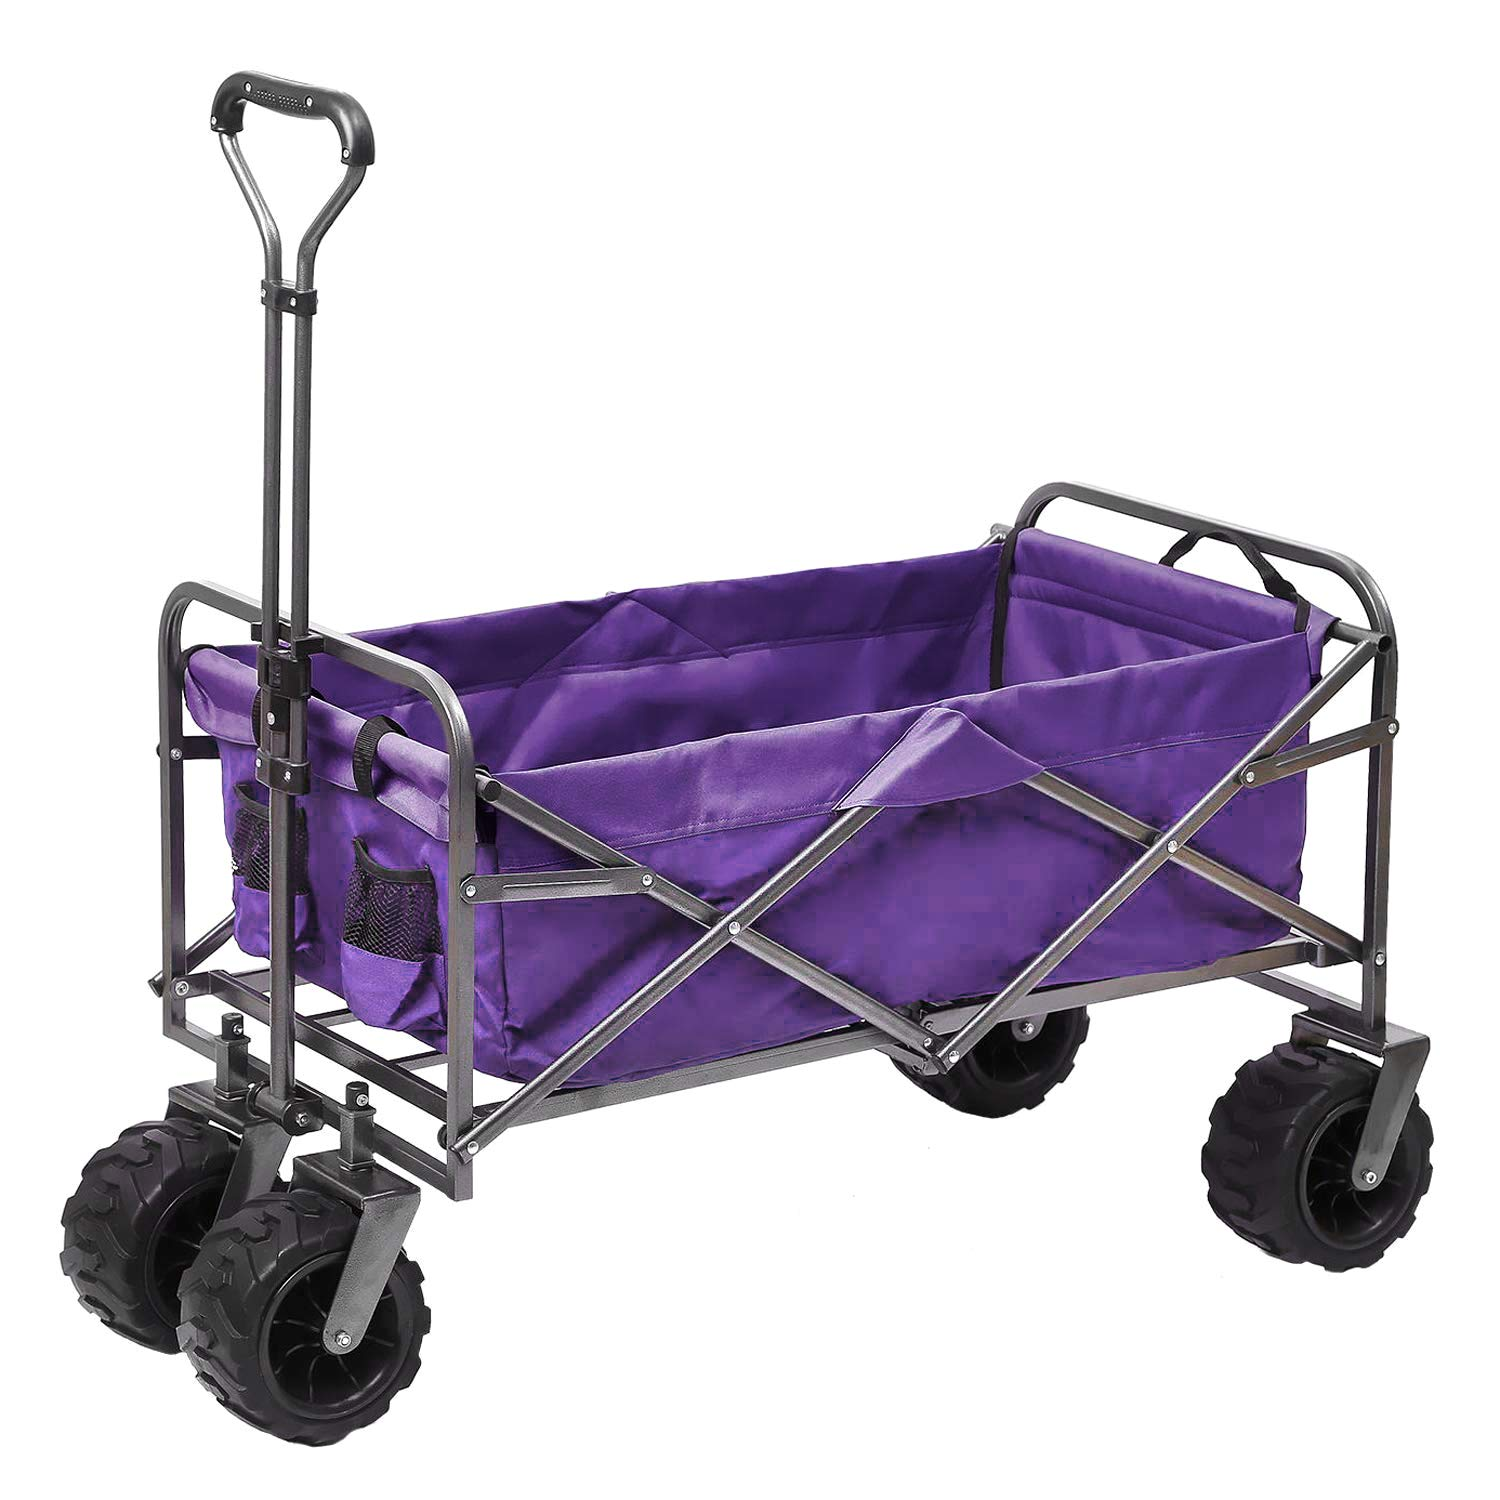 Outdoor Innovations Heavy Duty Collapsible All Terrain Folding Beach Wagon Utility Cart Purple